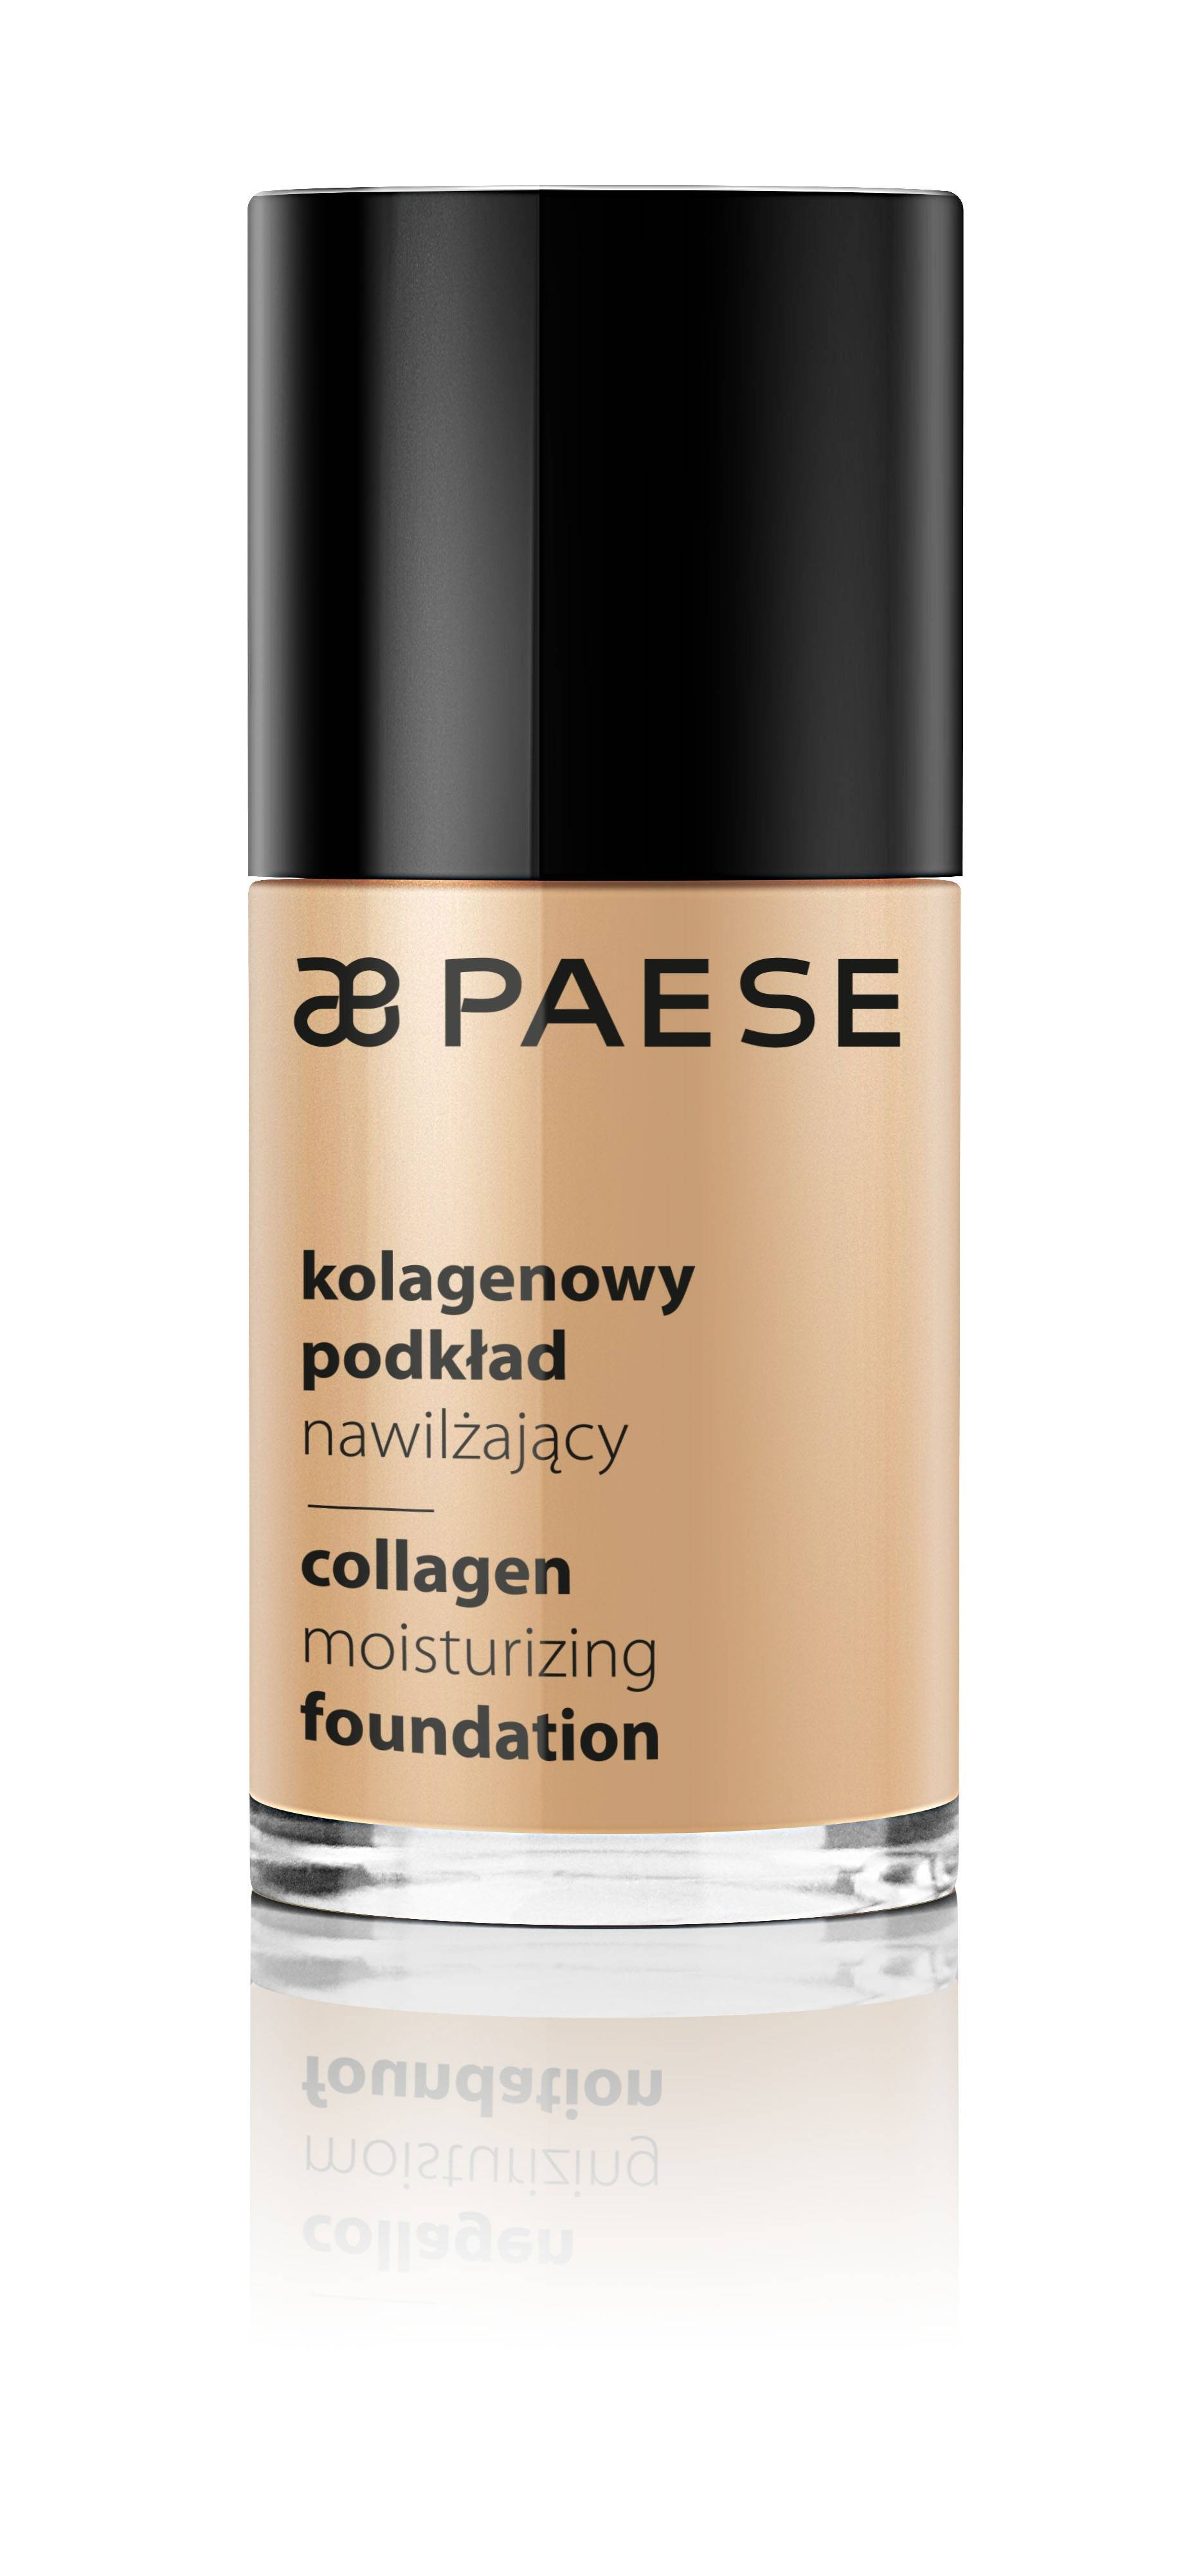 collagen moistruizing foundation.jpg